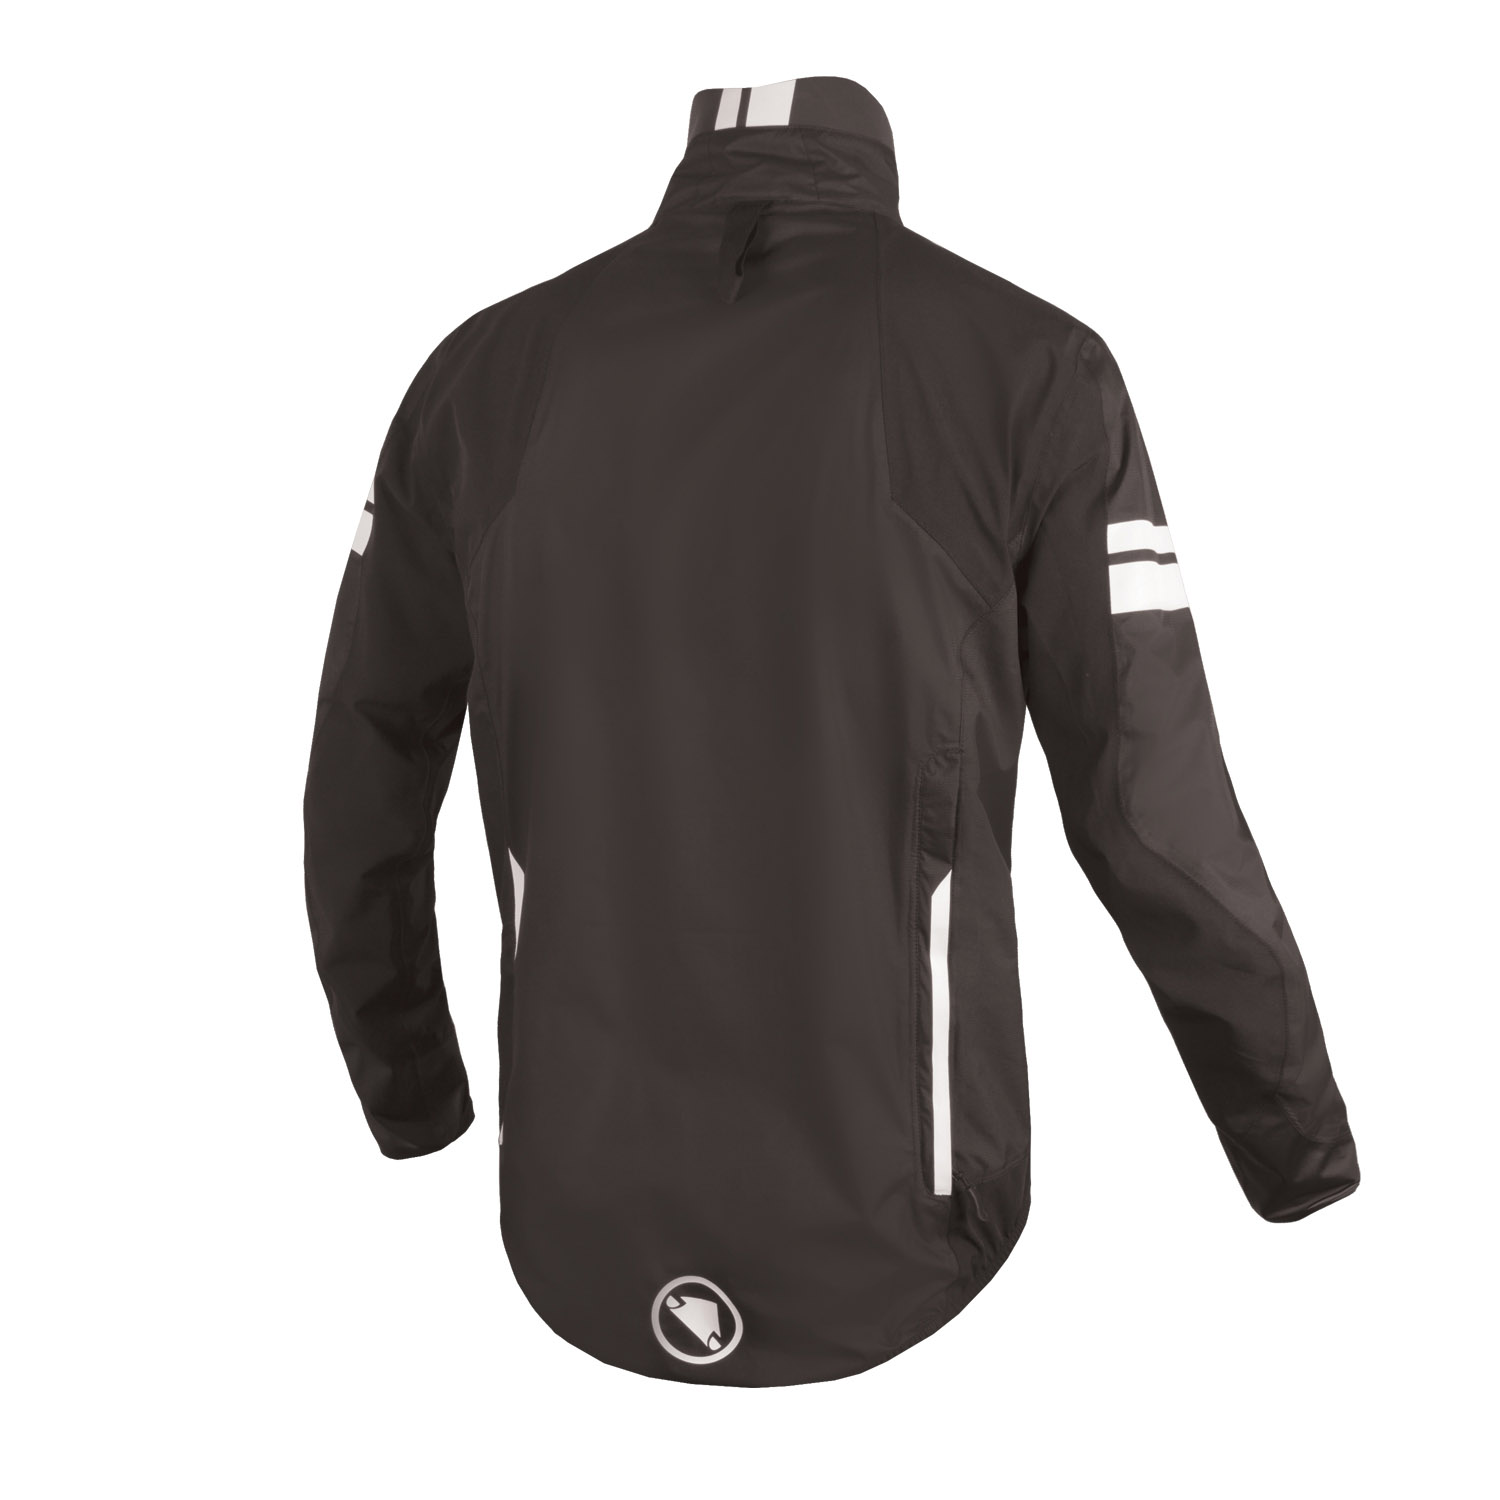 Pro SL Shell Jacket Black